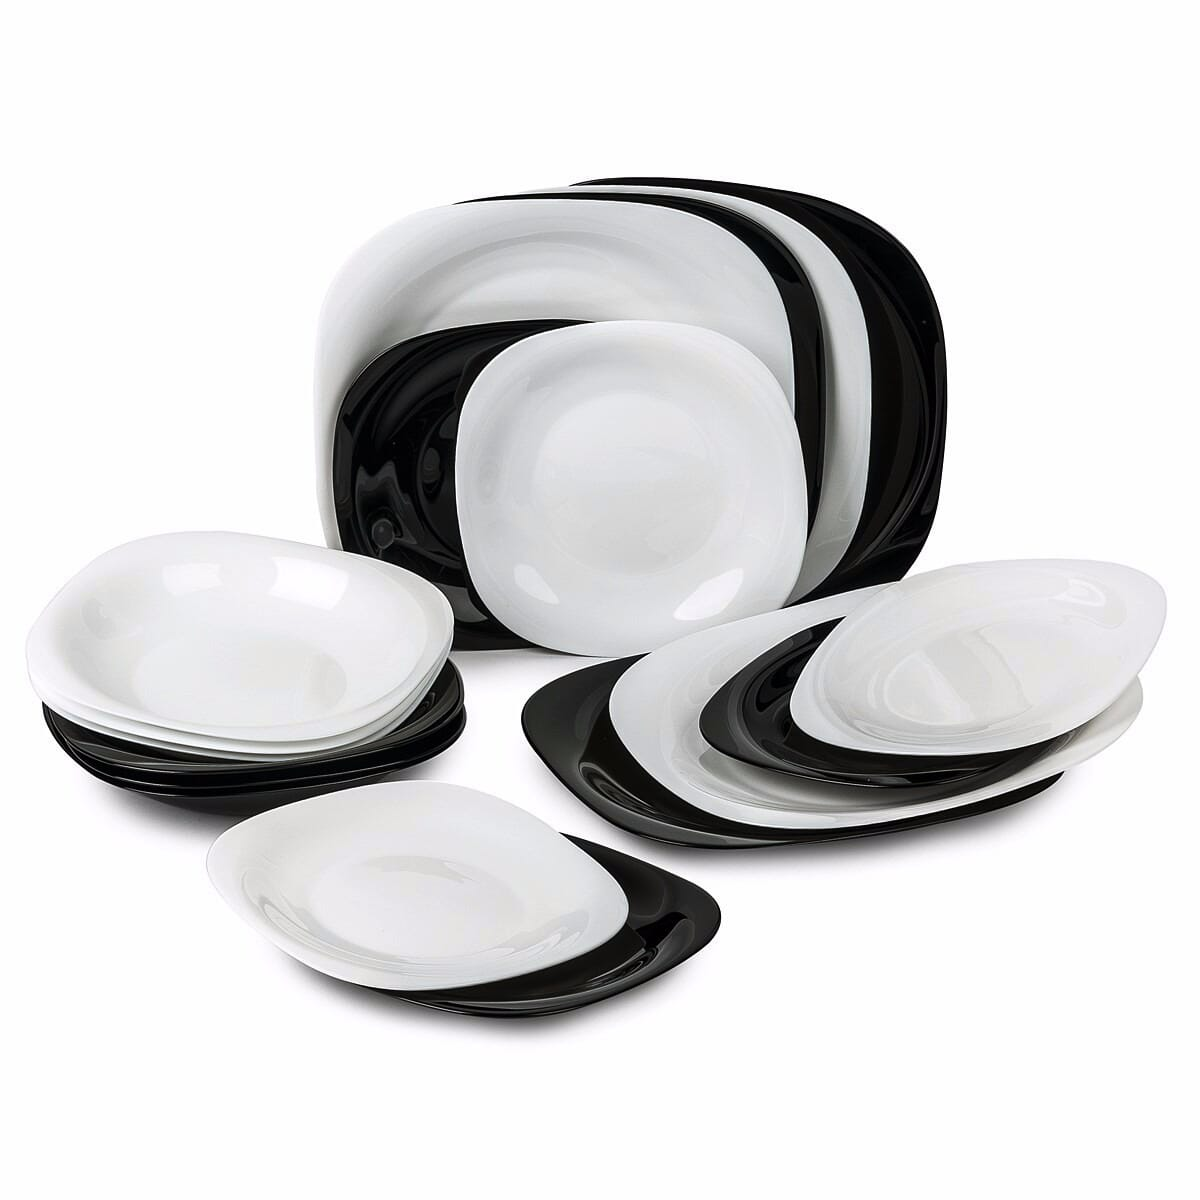 Luminarc Dining Sets 19 Pcs Carine Black and White Plates Bowls  sc 1 st  eBay & Luminarc Dining Sets 19 Pcs Carine Black and White Plates Bowls ...